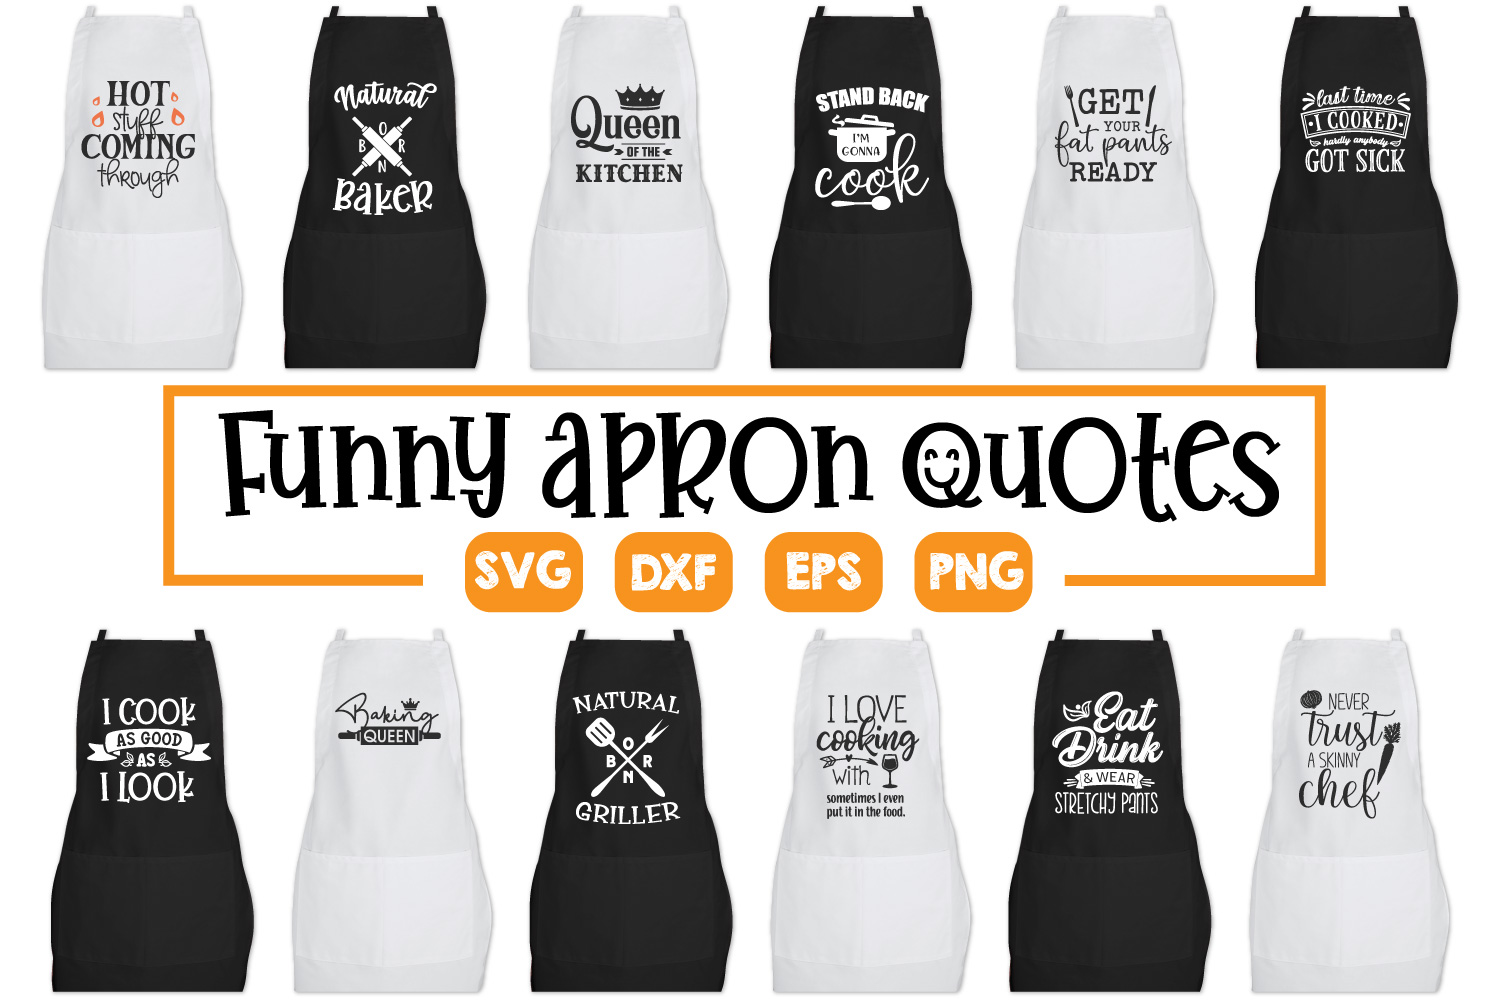 Apron Quotes Bundle - SVG, PNG, DXF, EPS example image 1